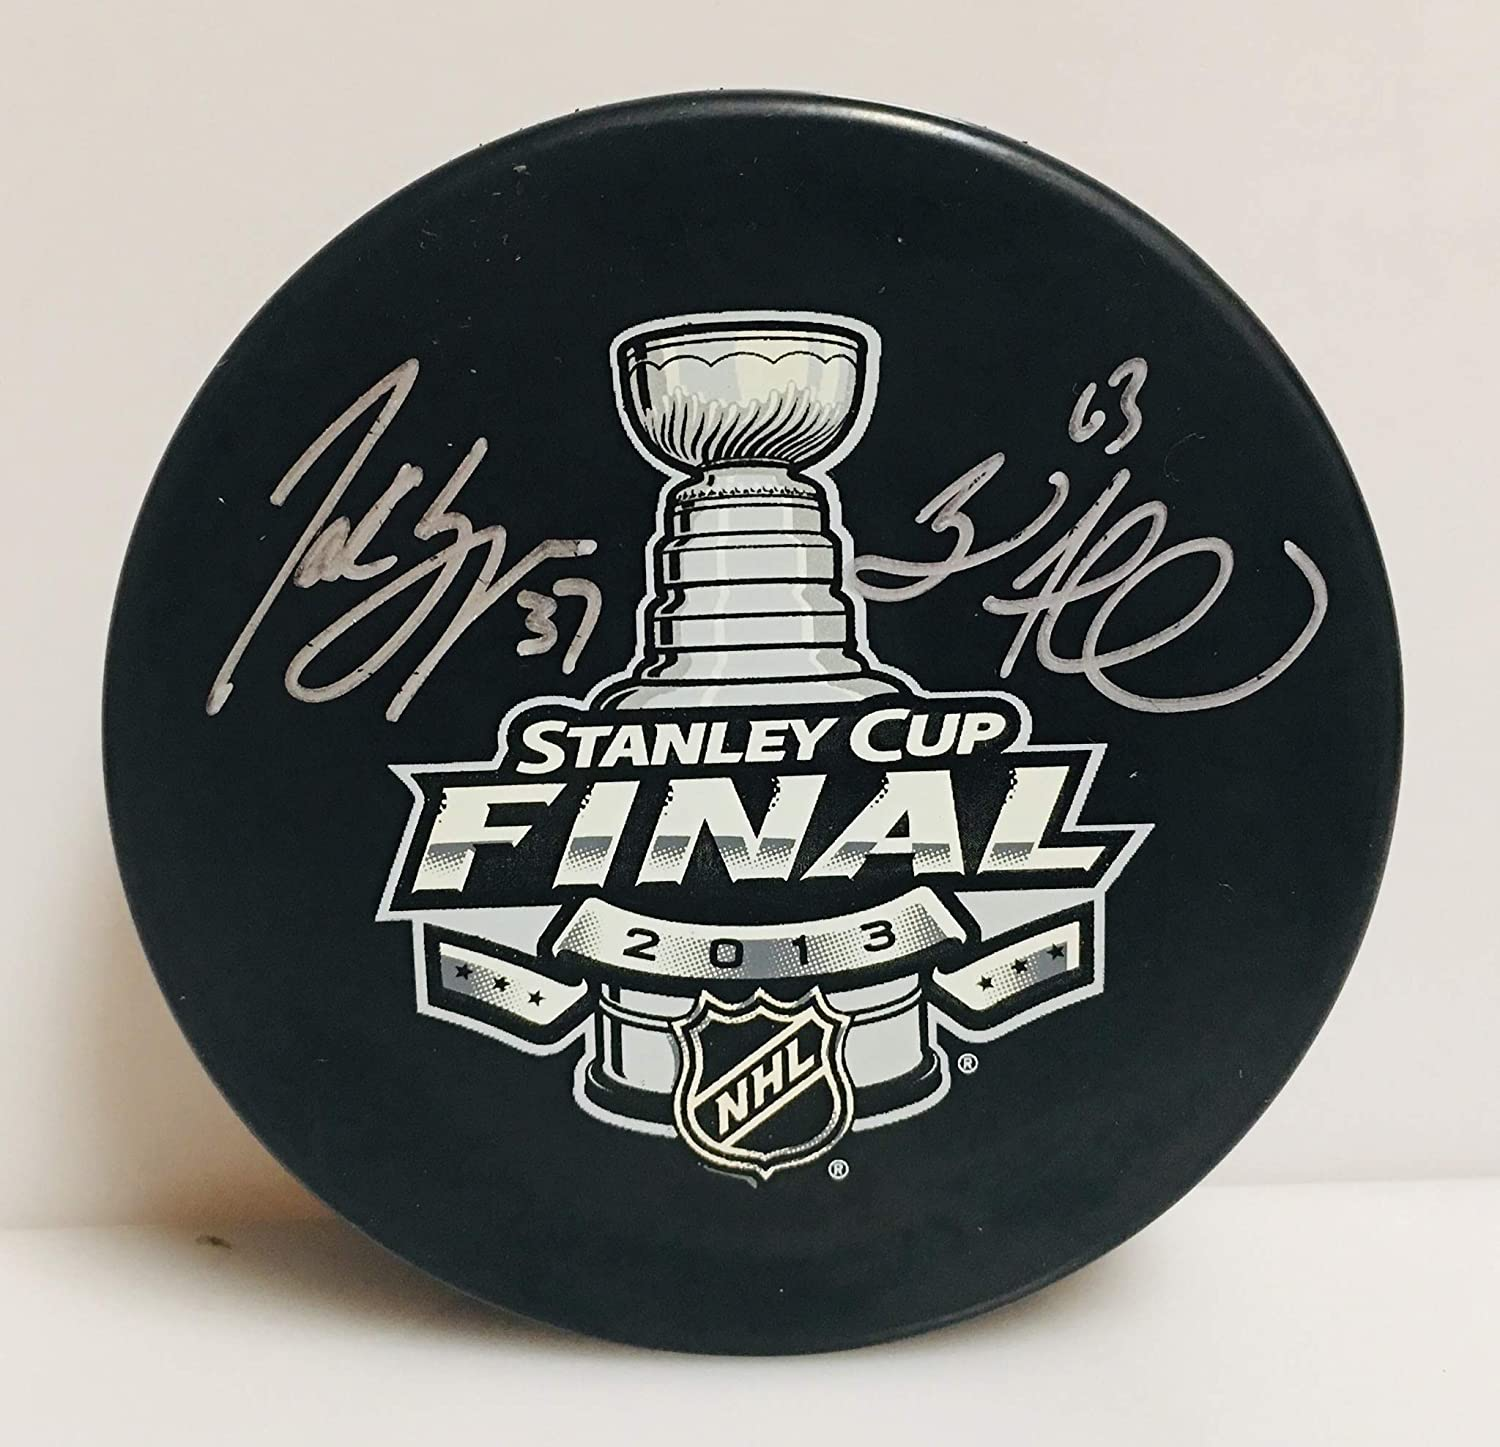 Patrice Bergeron Brad Marchand Boston Bruins Signed 2013 SC Final Hockey Puck